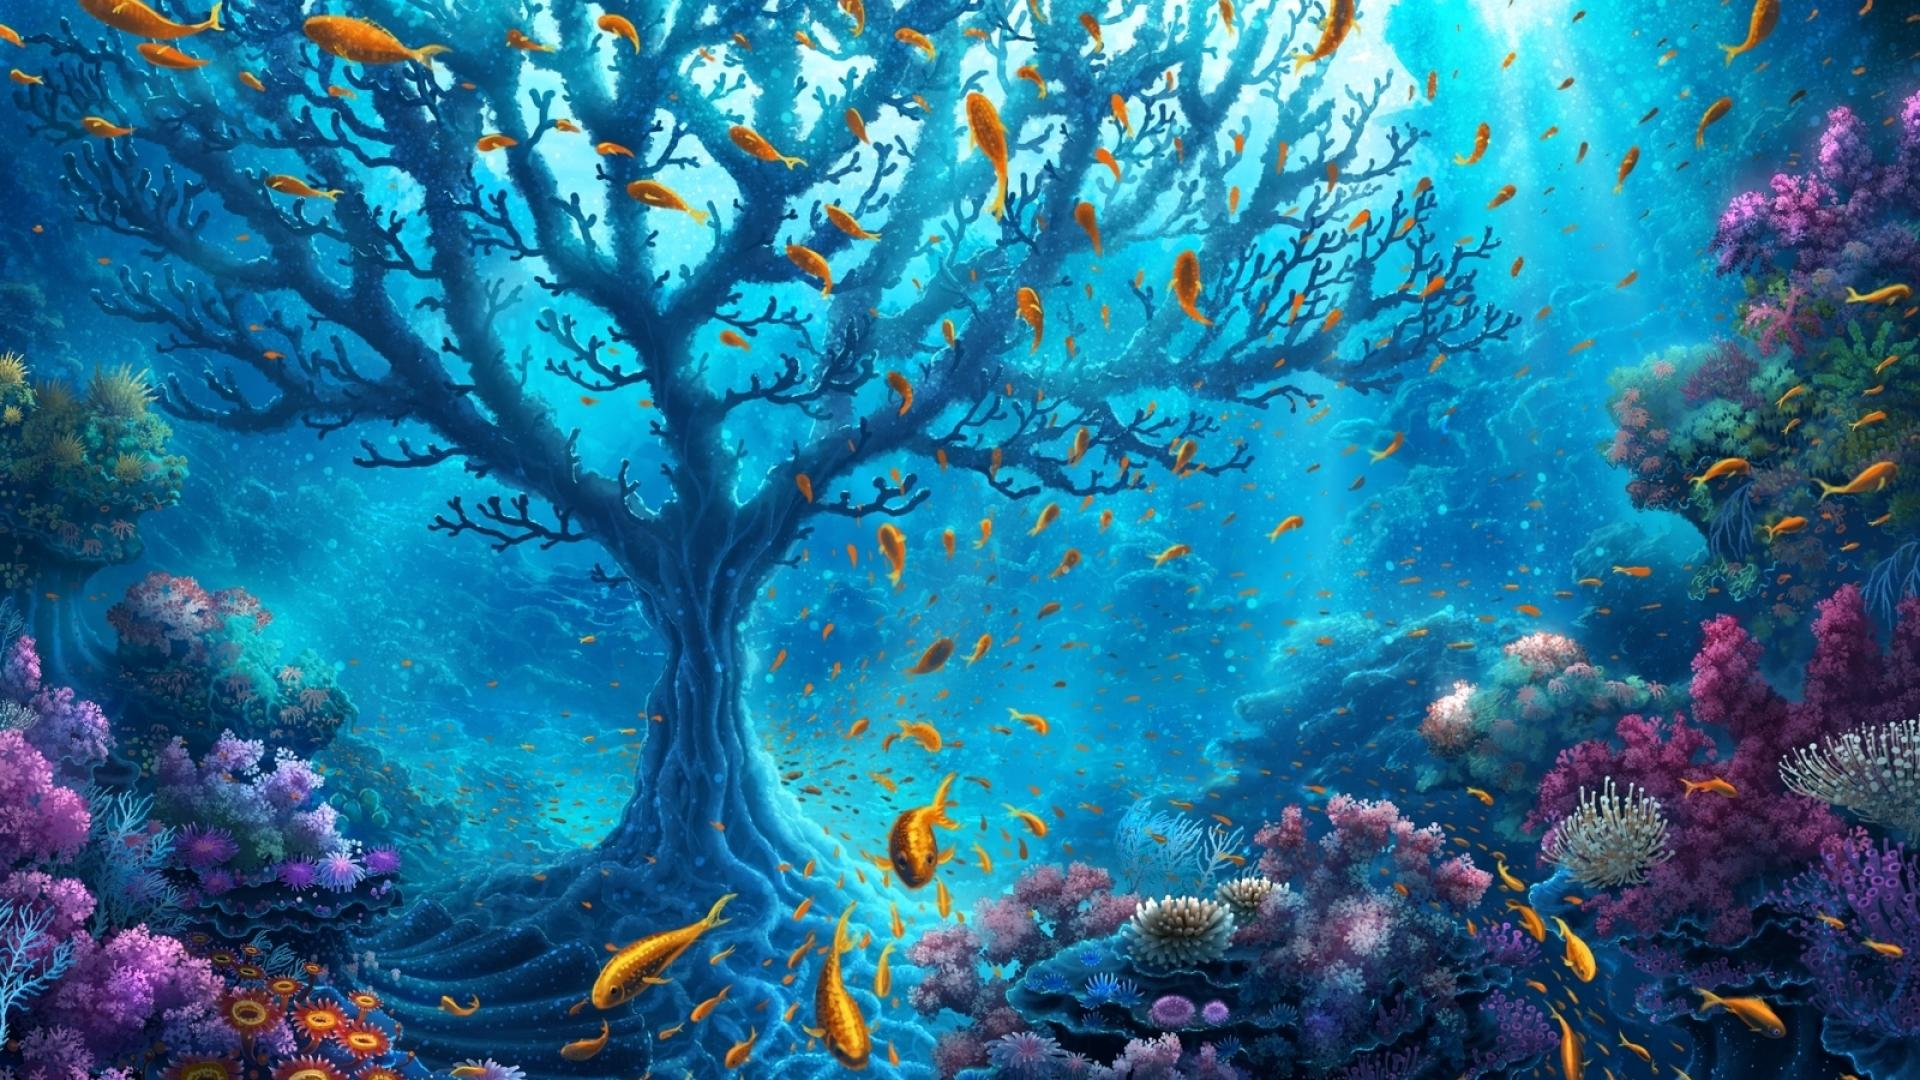 1920x1080 underwater world fantasy desktop pc and mac - Underwater desktop background ...